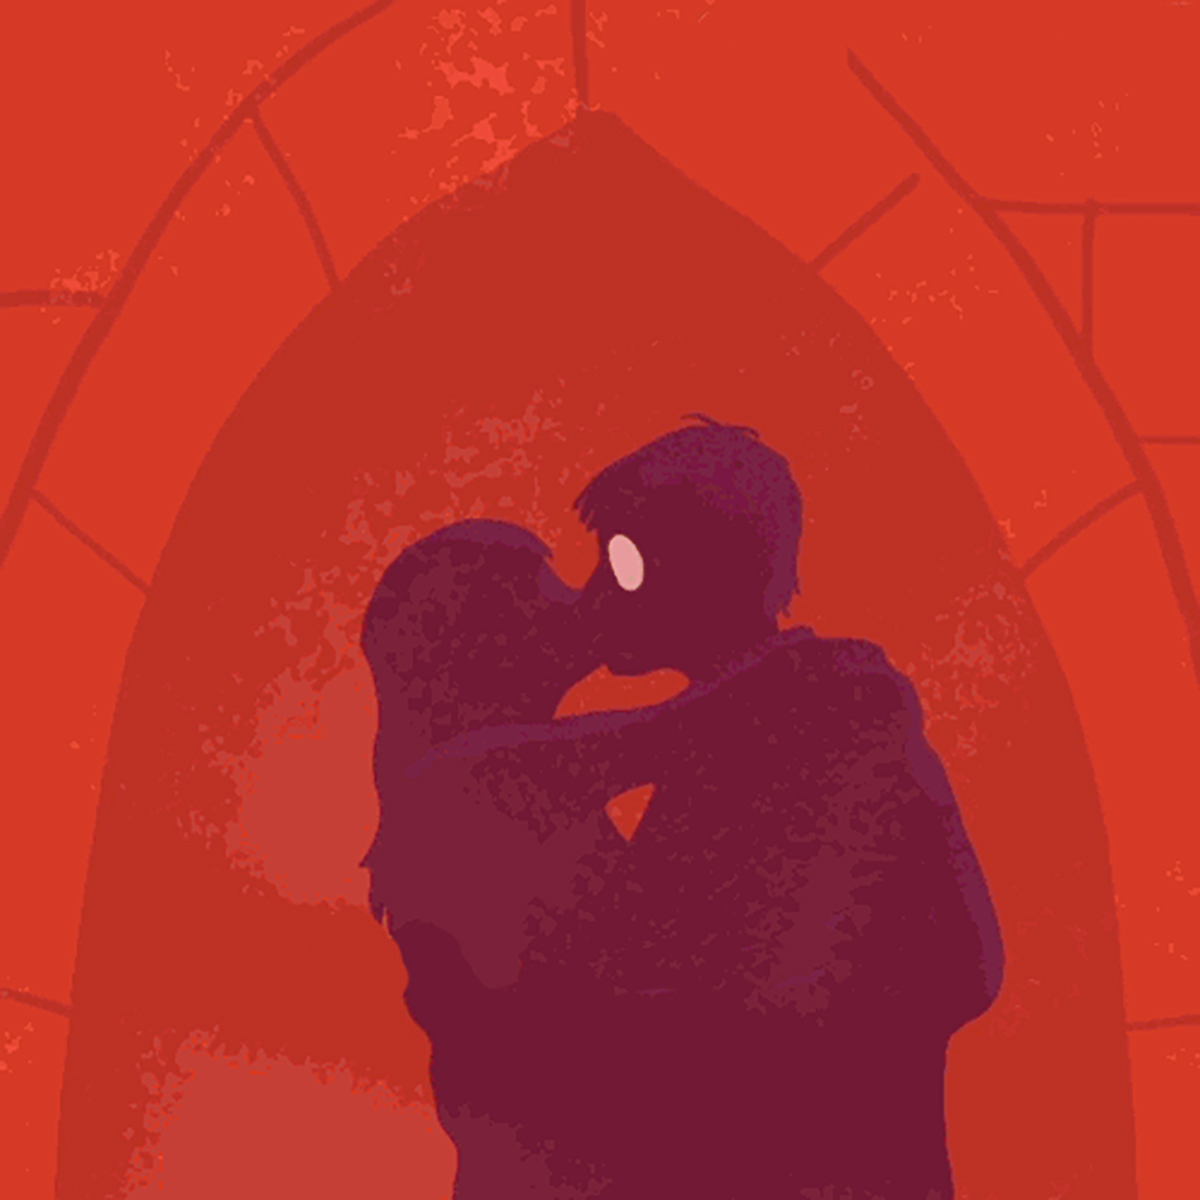 Illustration of Harry Potter and Ginny Weasley kissing from Read the Magic